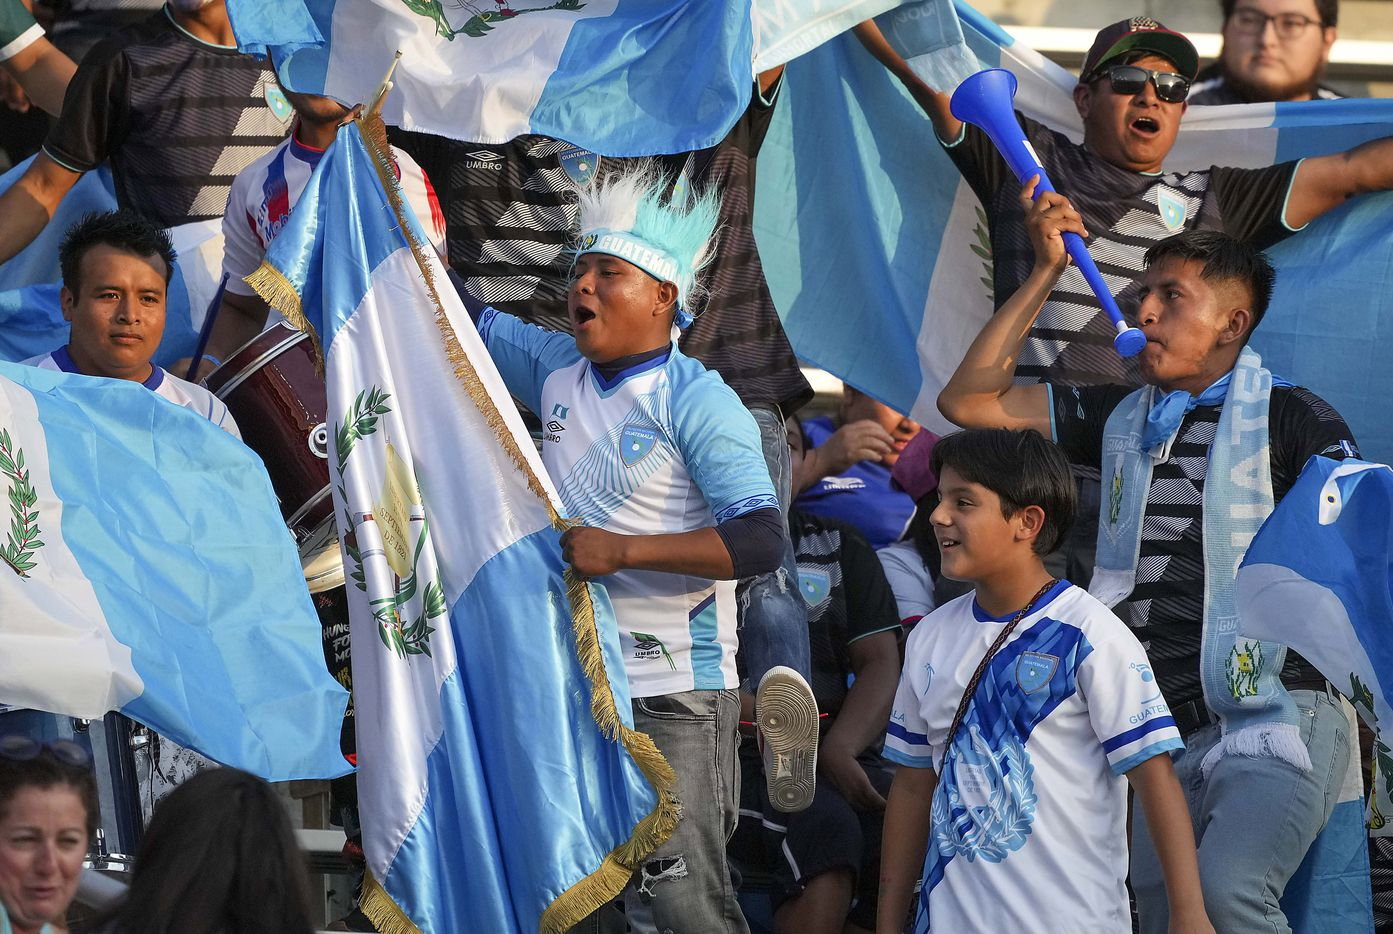 Guatemala supporters cheer as their team takes the field to warm up before a CONCACAF Gold Cup Group A soccer match against Mexico at the Cotton Bowl on Wednesday, July 14, 2021, in Dallas.